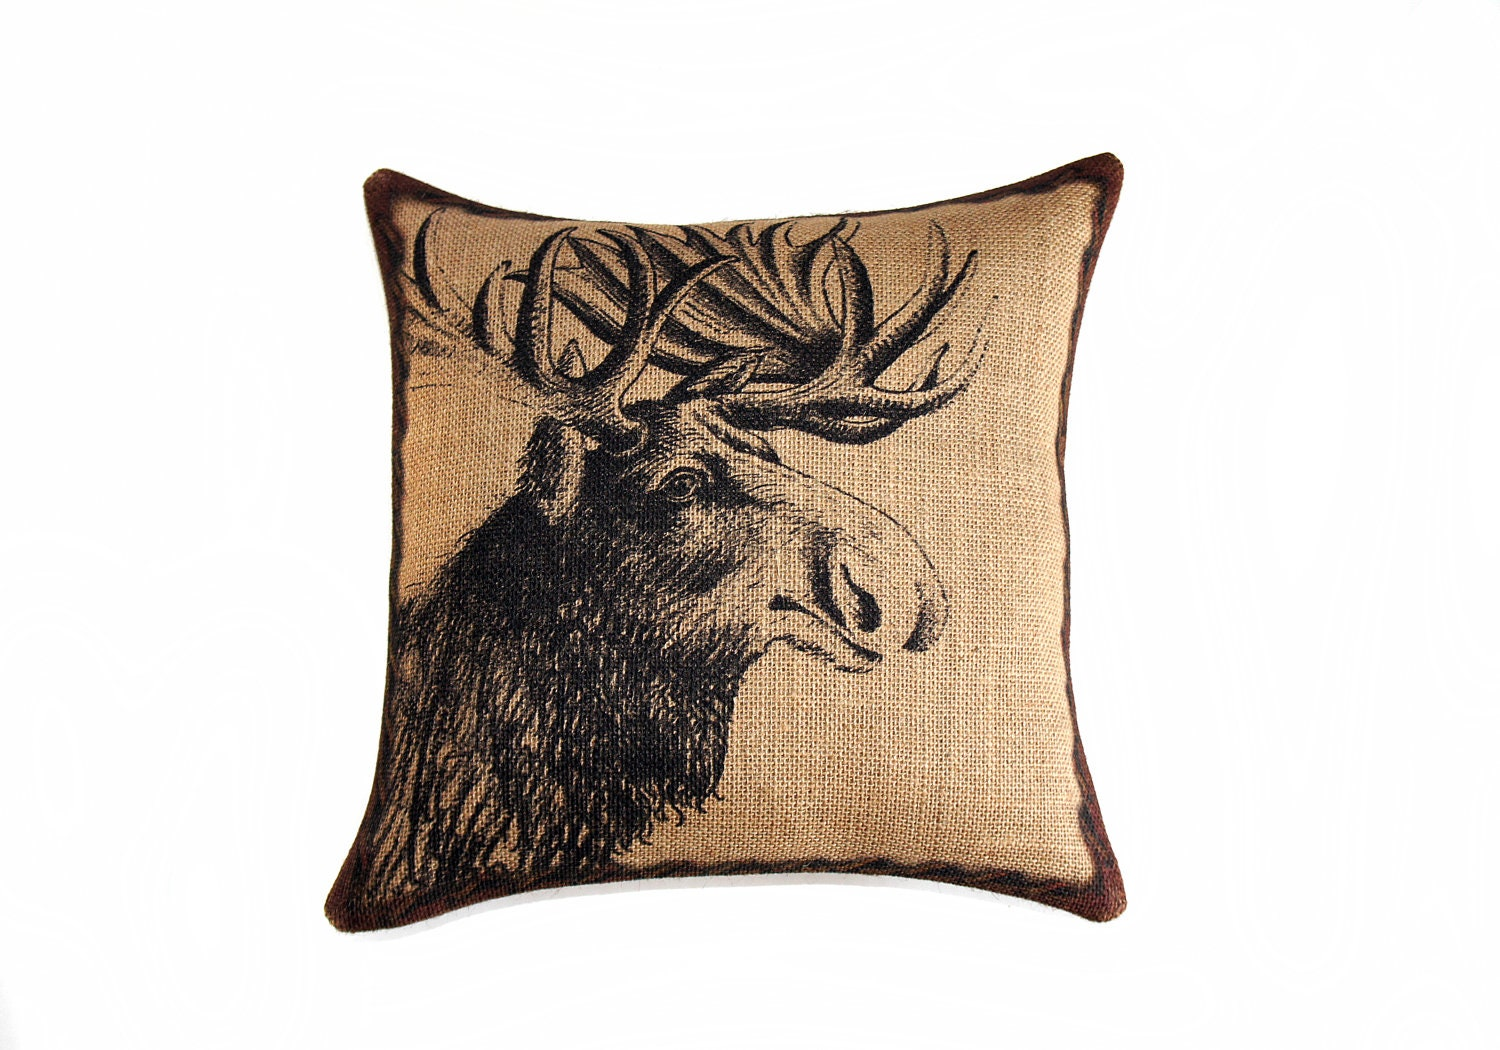 Moose Pillow, Burlap Pillow, Throw Pillow, Cushion, Accent Pillow ...